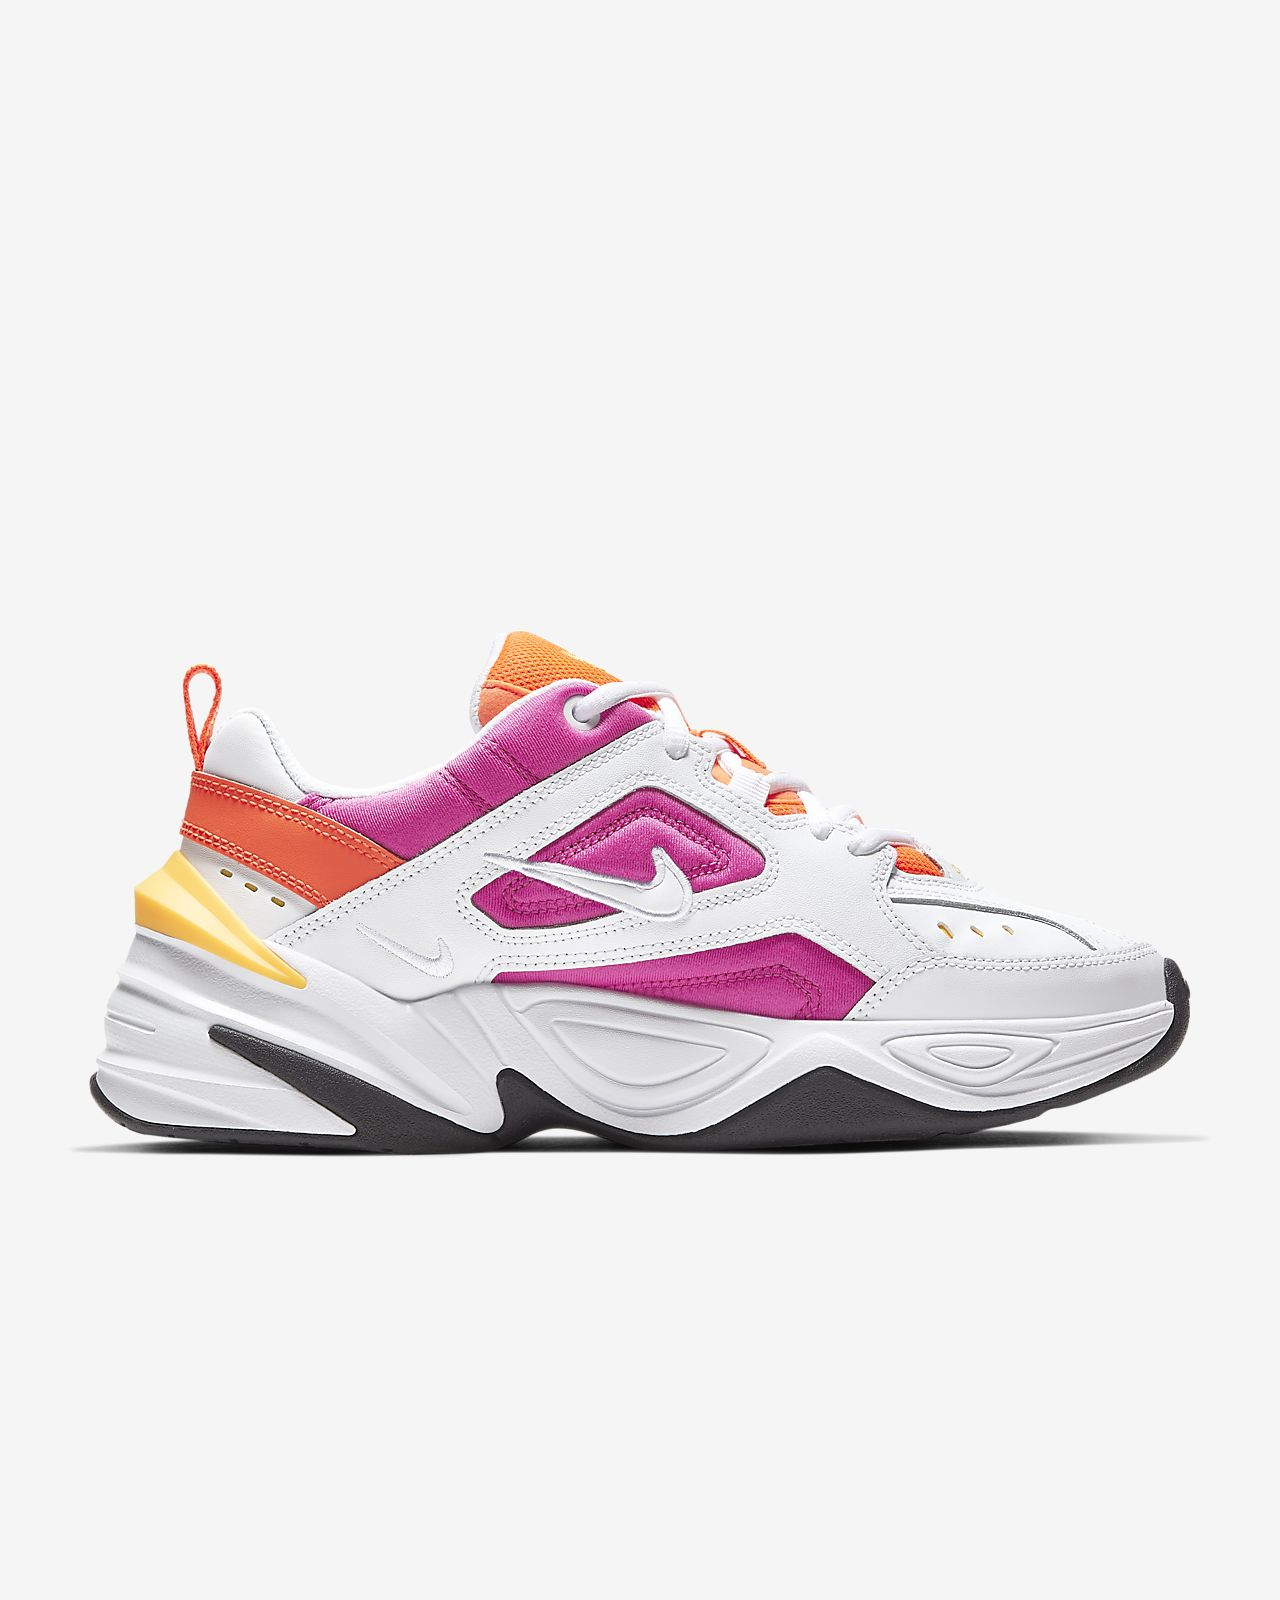 lower price with 46274 75c1f Low Resolution Nike M2K Tekno Shoe Nike M2K Tekno Shoe